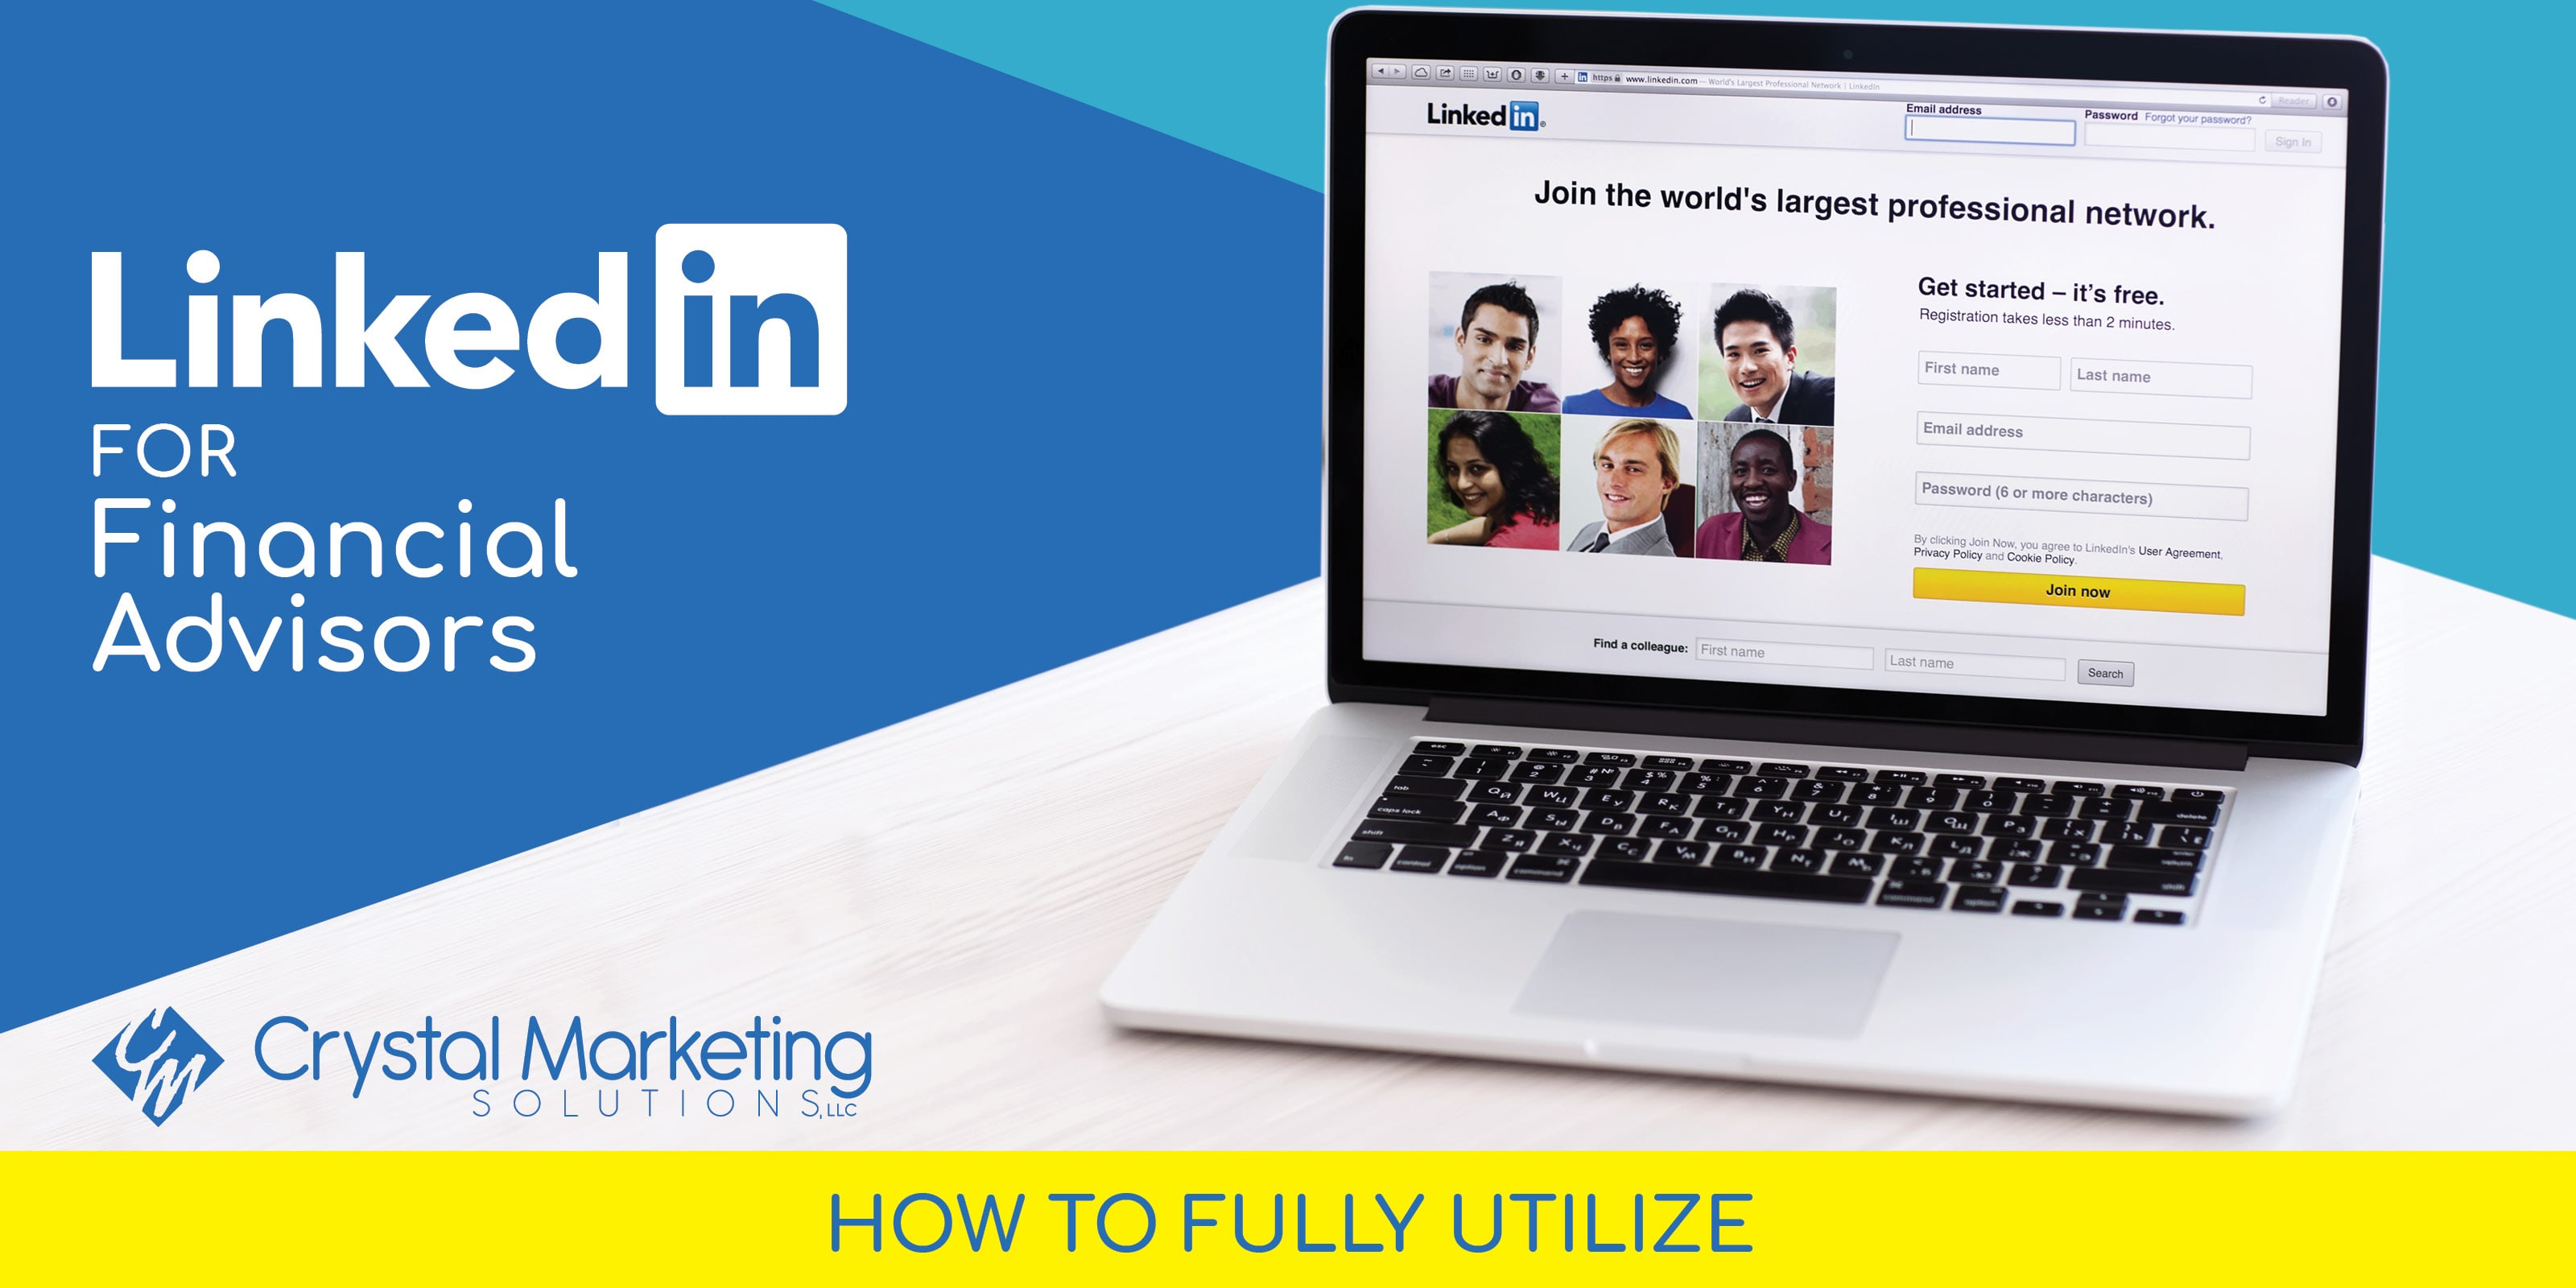 How to Fully Utilize Your LinkedIn Profile